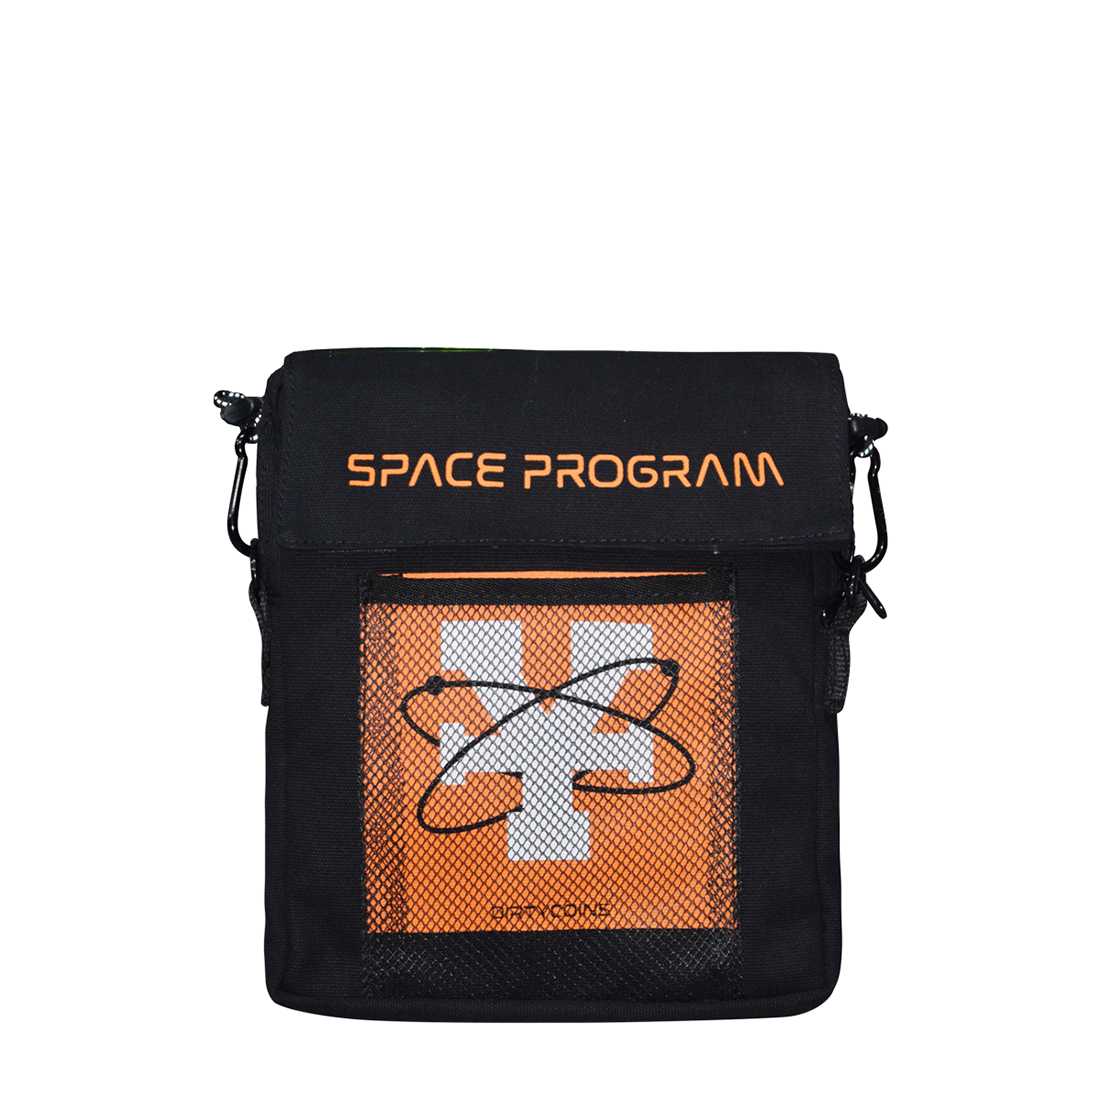 Space Program Cross Bag (2 phối màu)